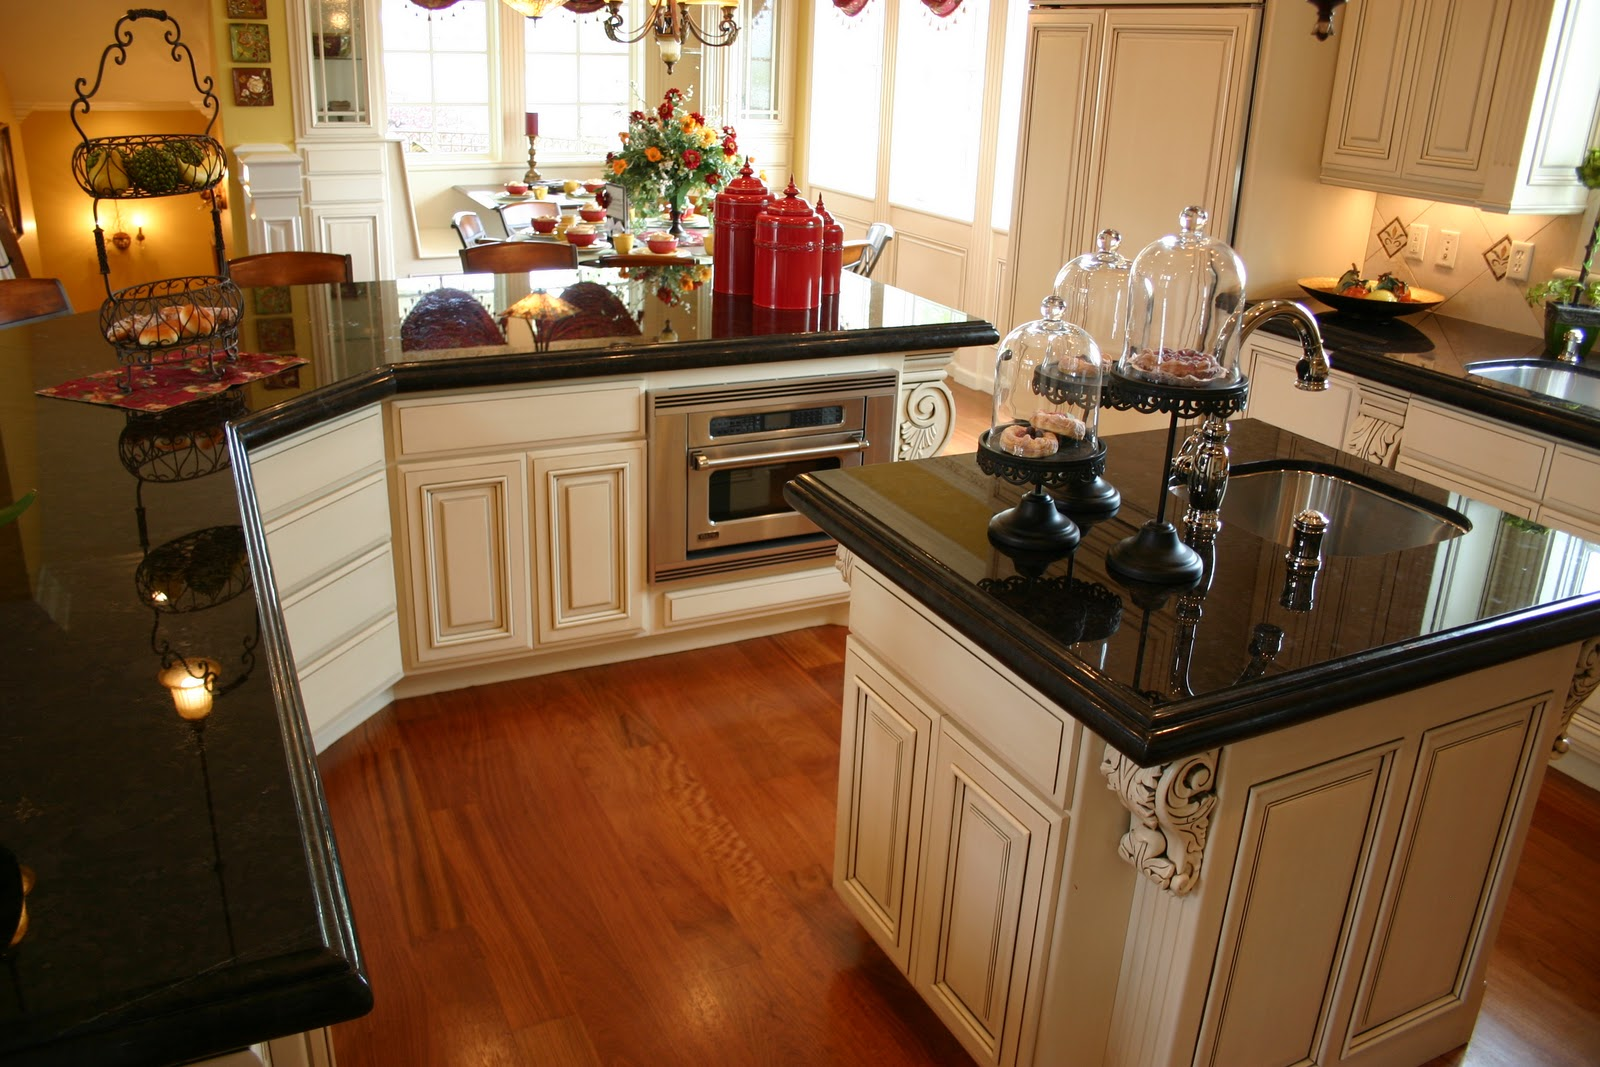 Black Kitchen Countertops How To Install Hidden Hinges On Cabinets The Granite Gurus Absolute